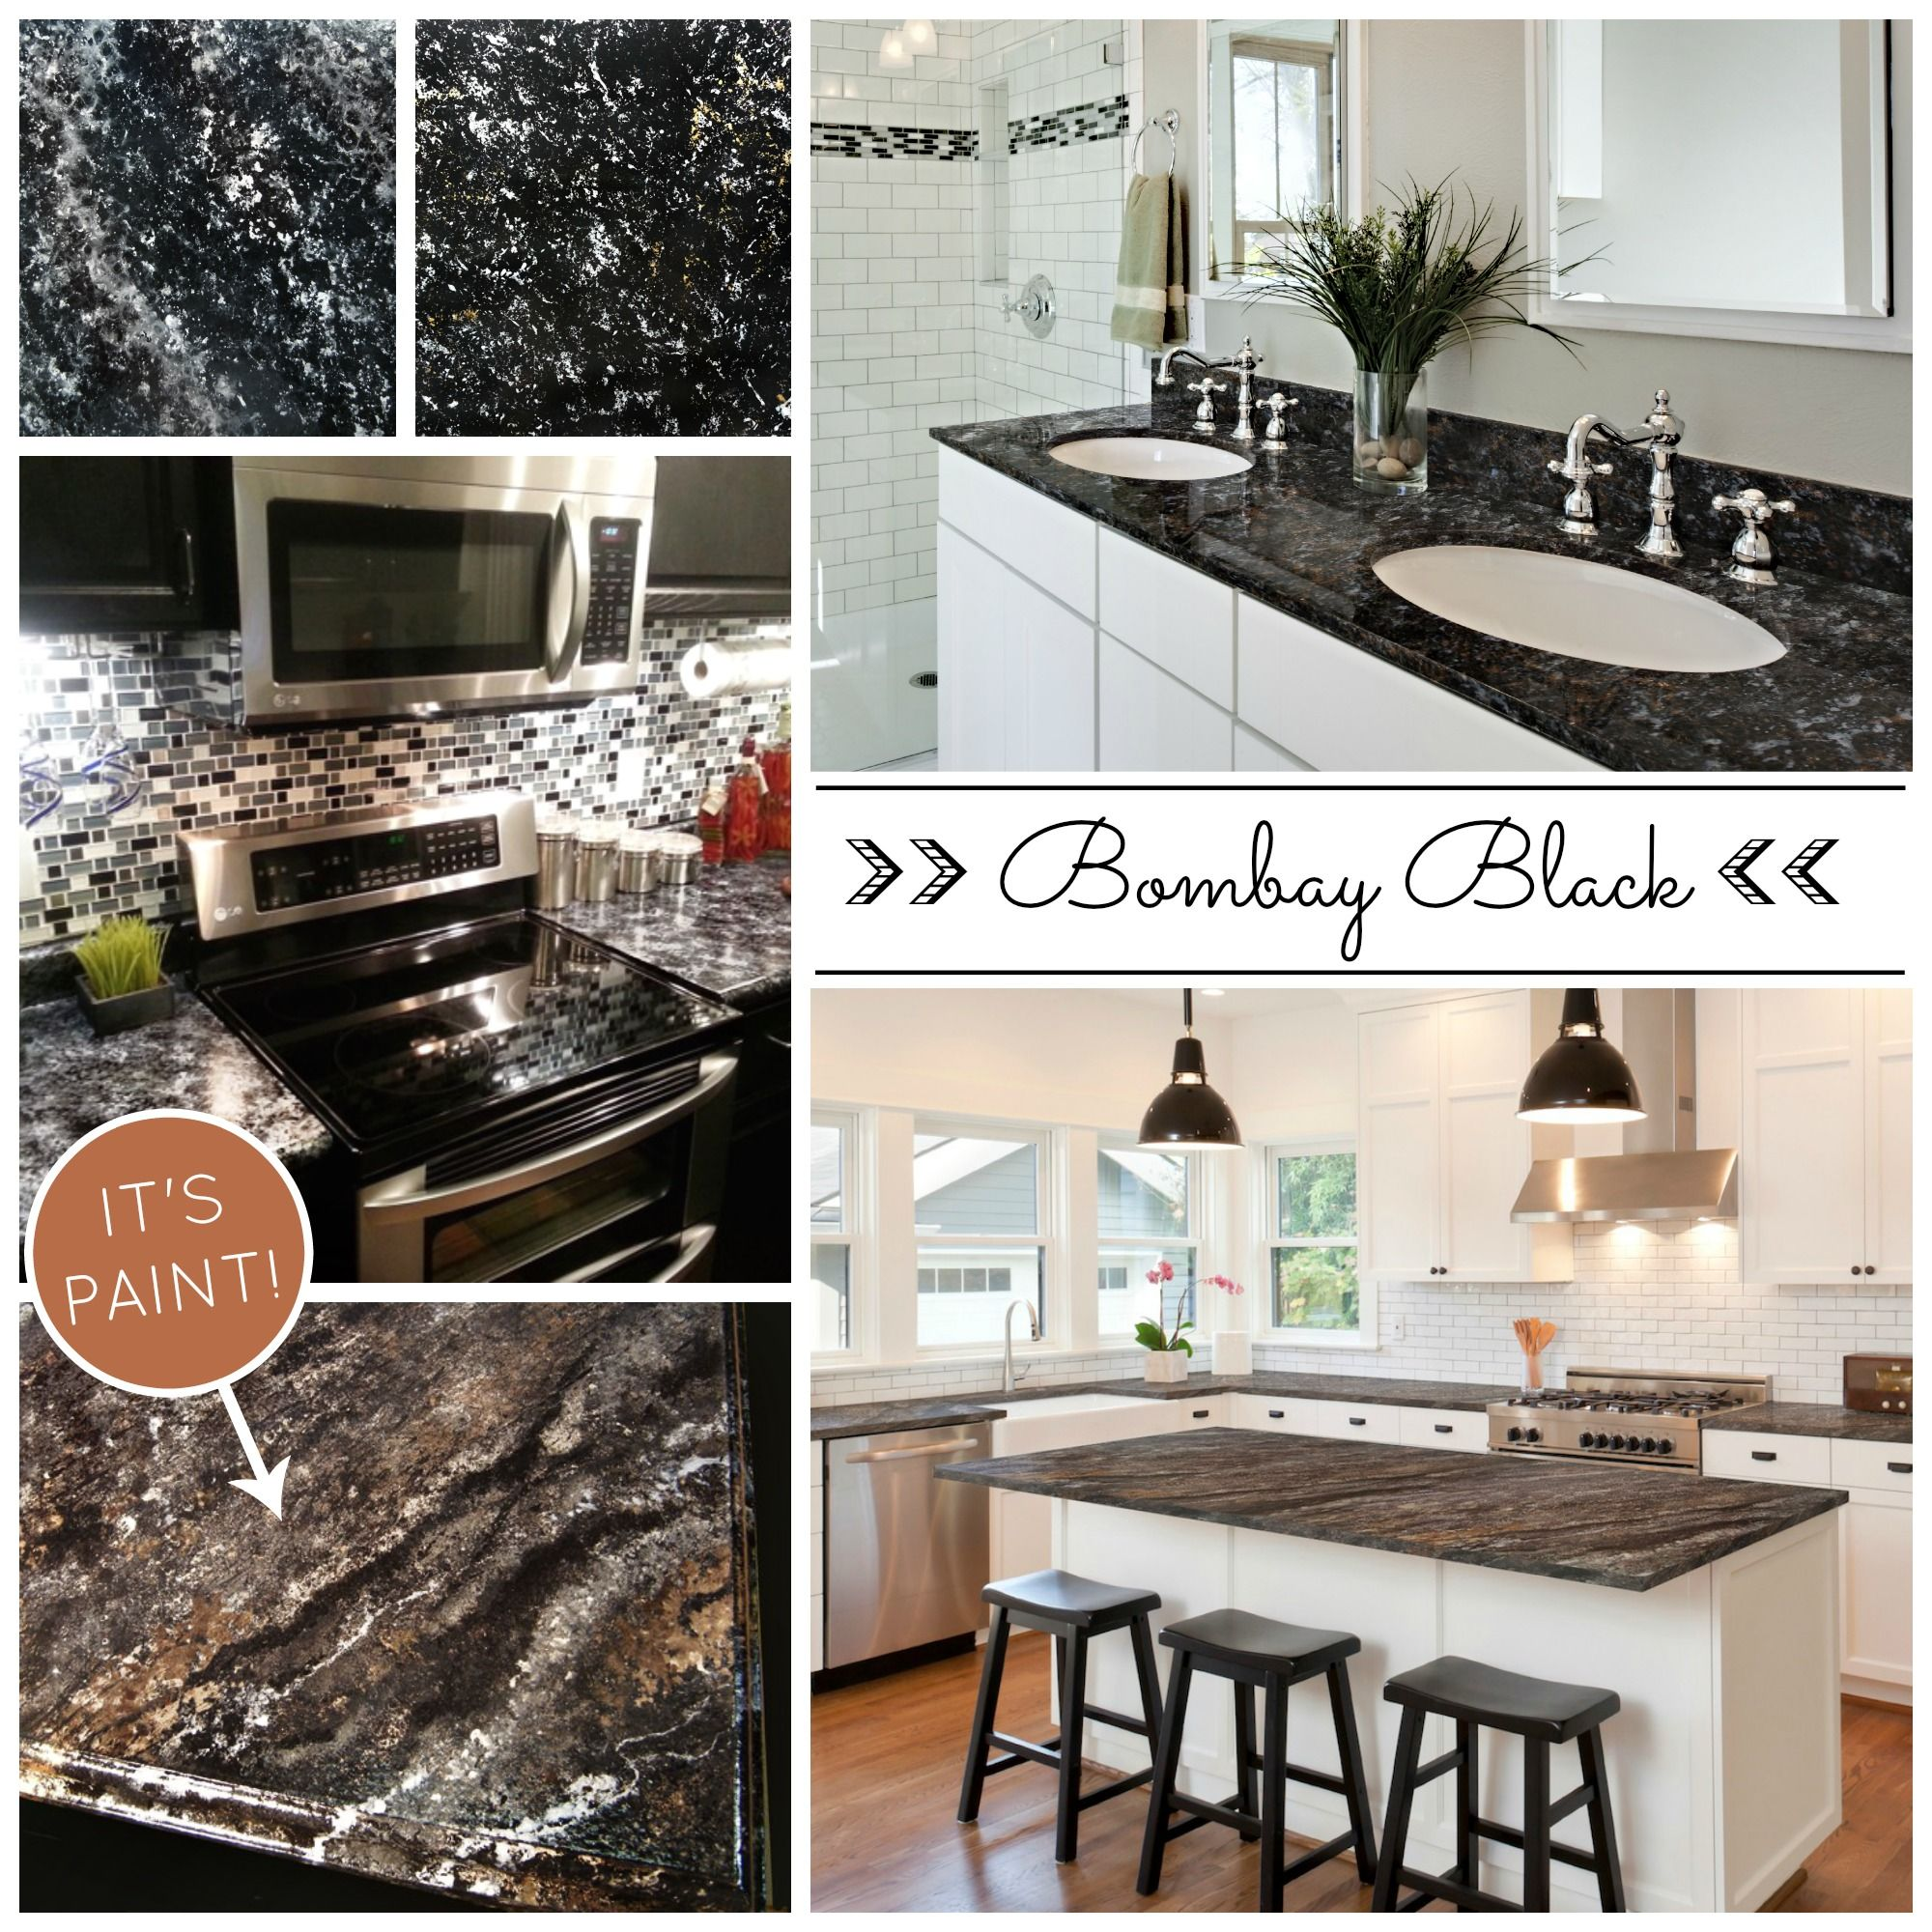 Beautiful And Affordable Painted Countertops Diy Countertop Paint Kits From Giani Granite Get T Painting Countertops Countertop Paint Kit Countertop Makeover